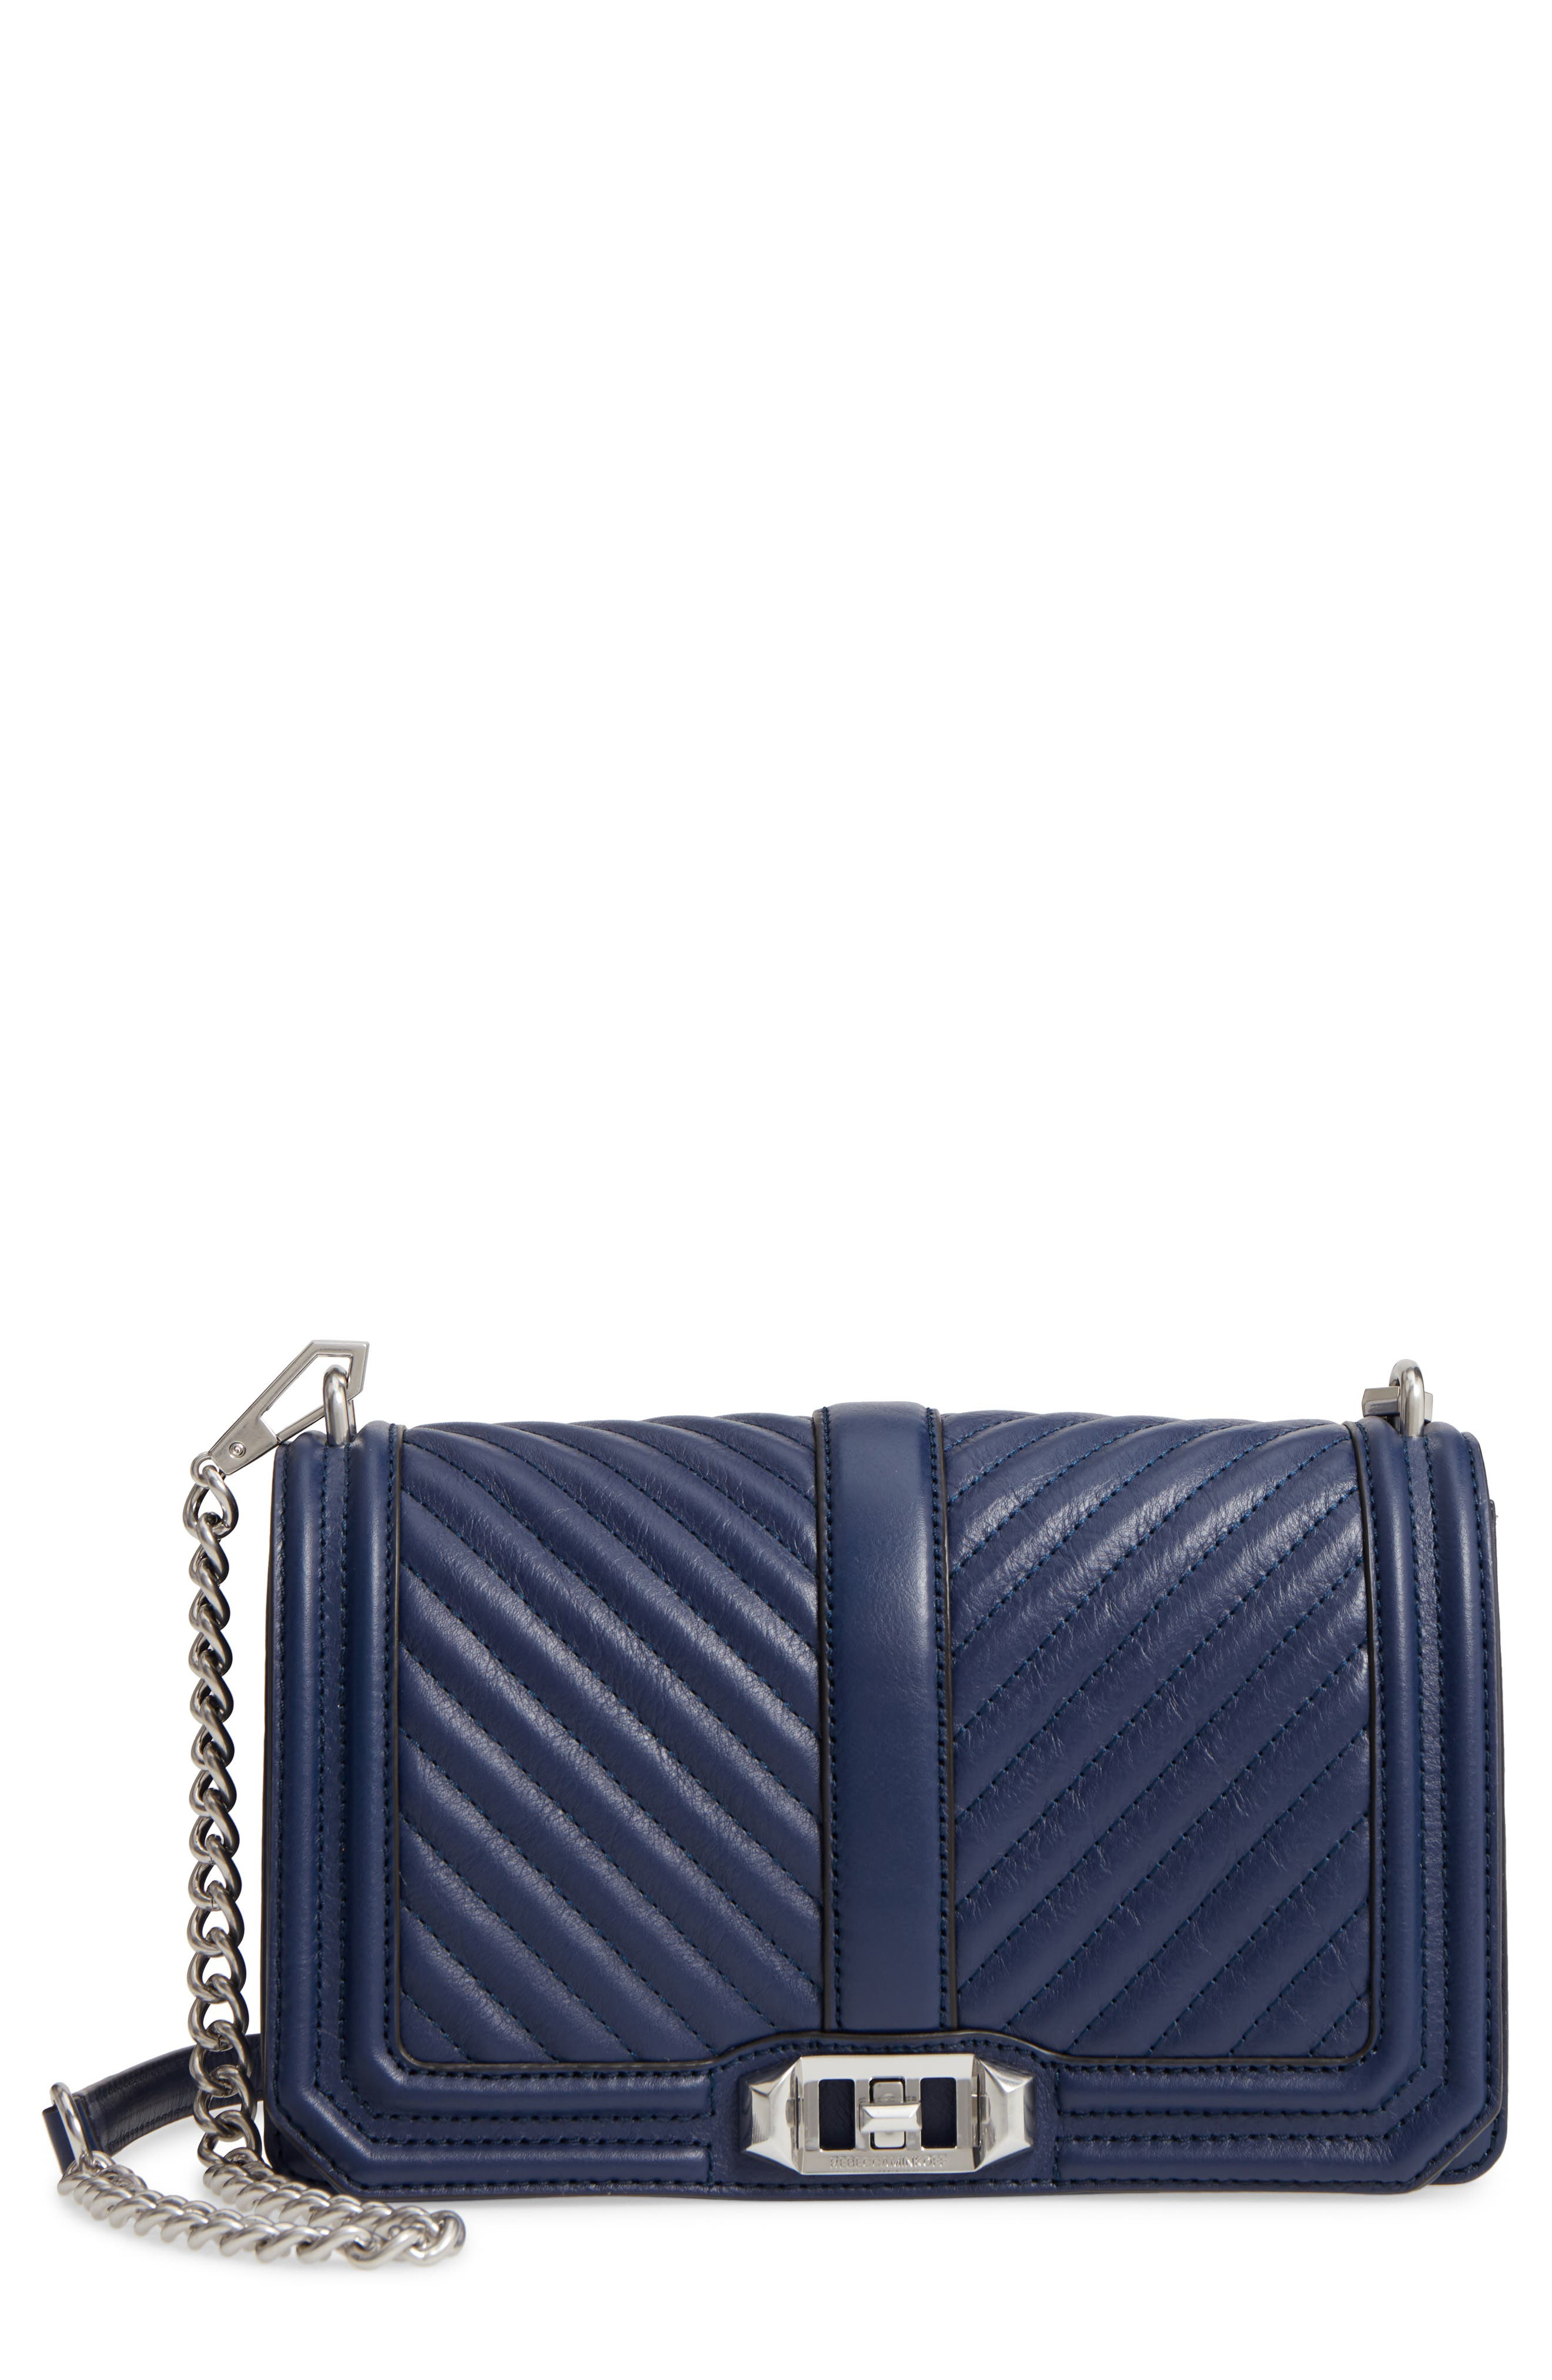 'CHEVRON QUILTED LOVE' CROSSBODY BAG - BLUE